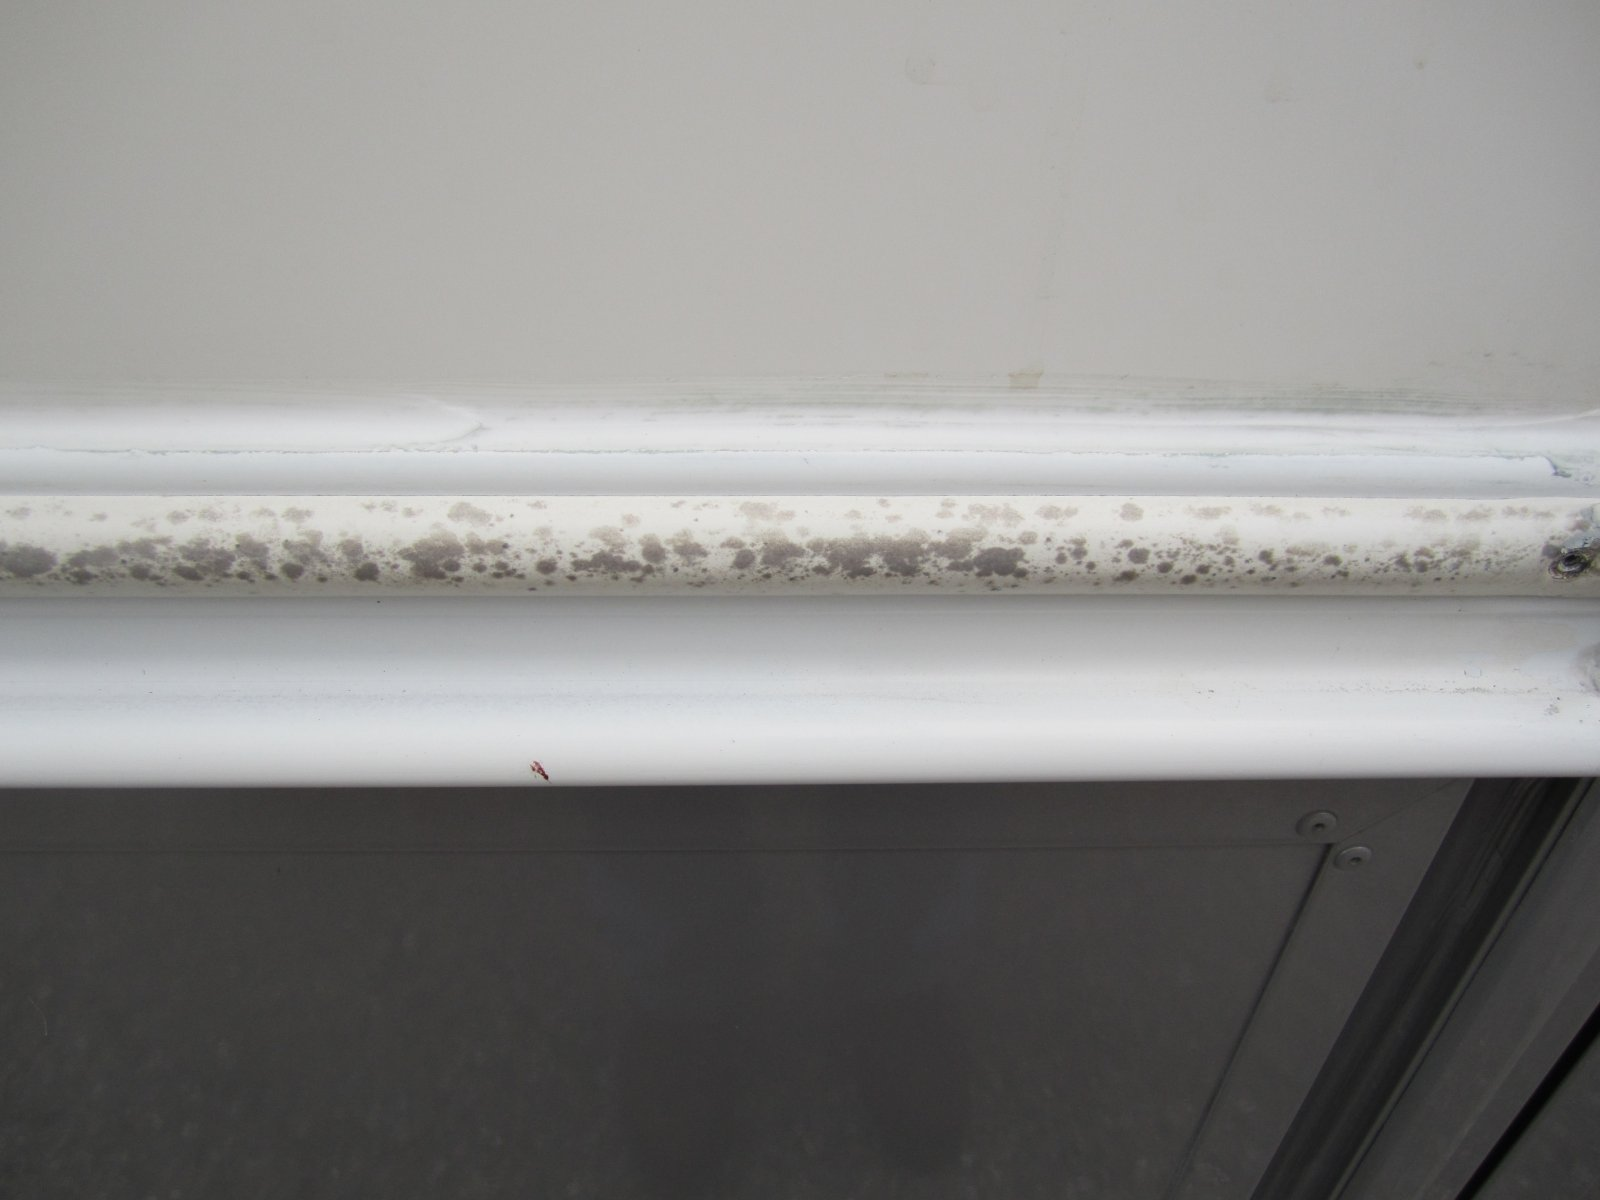 cleaning RV trim - iRV2 Forums